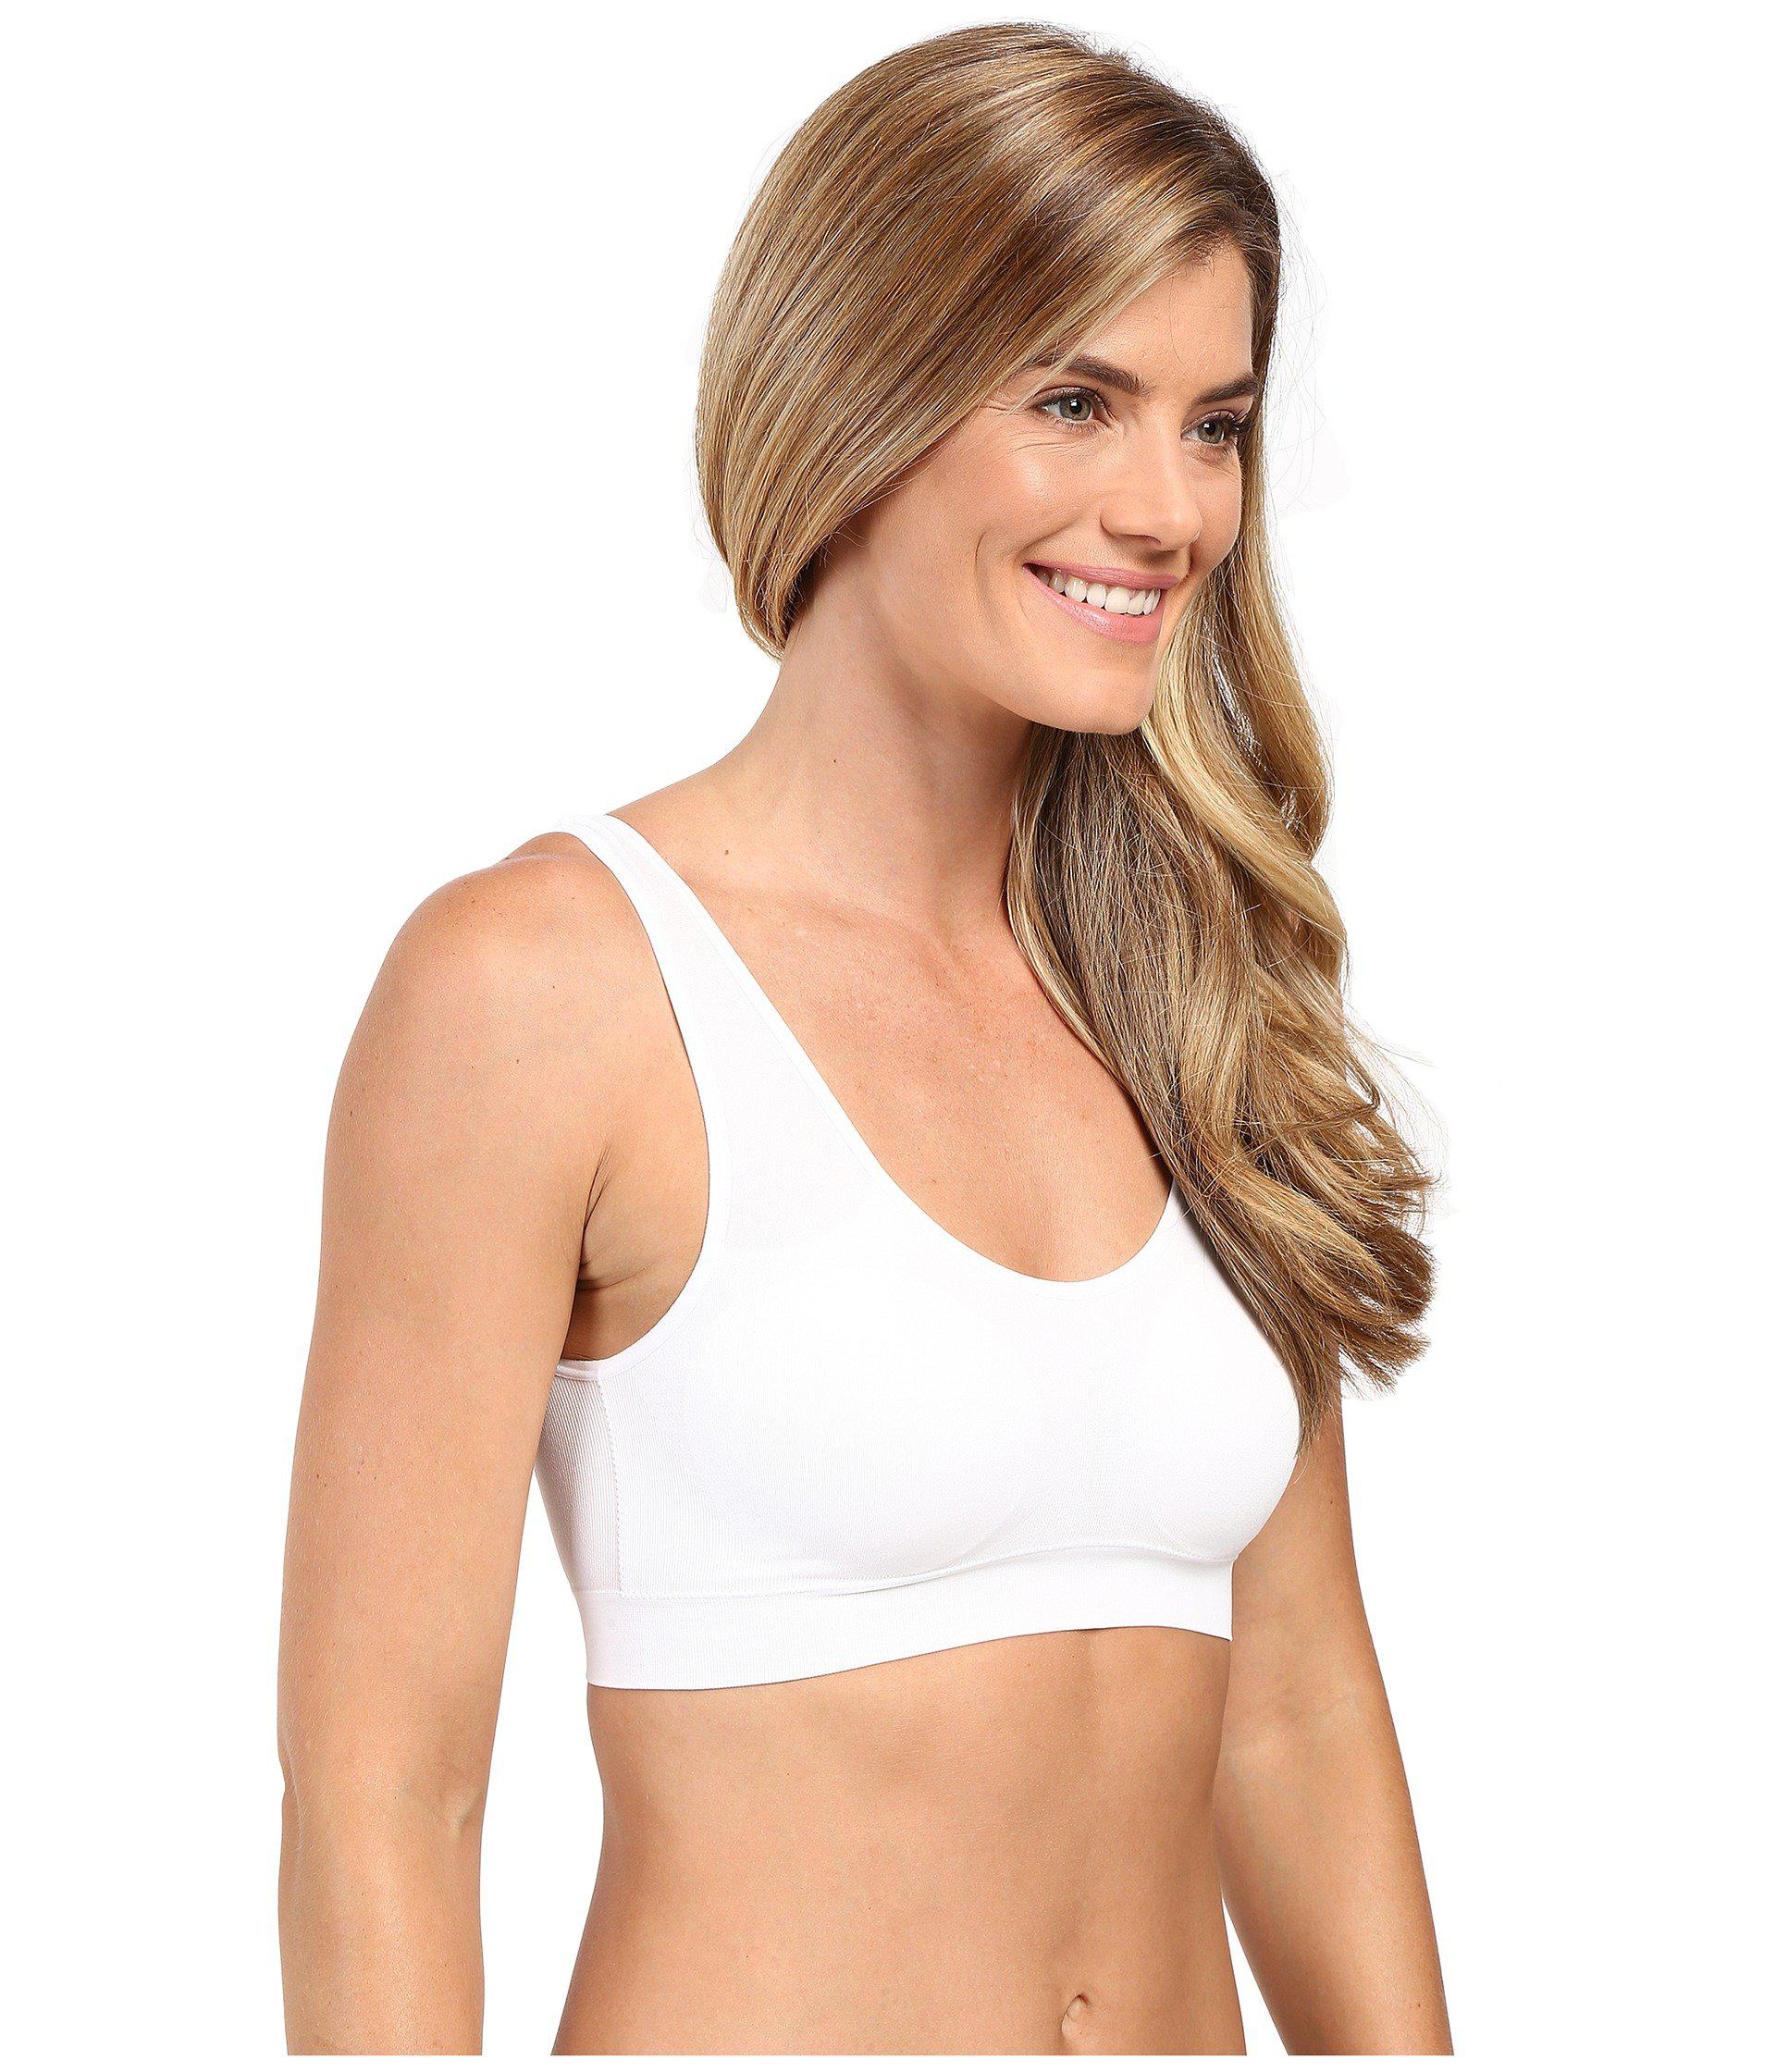 0159cba9512f8 Lyst - Jockey Modern Micro Seamfree(r) Ballet Crop Top (white) Women s  Underwear in White